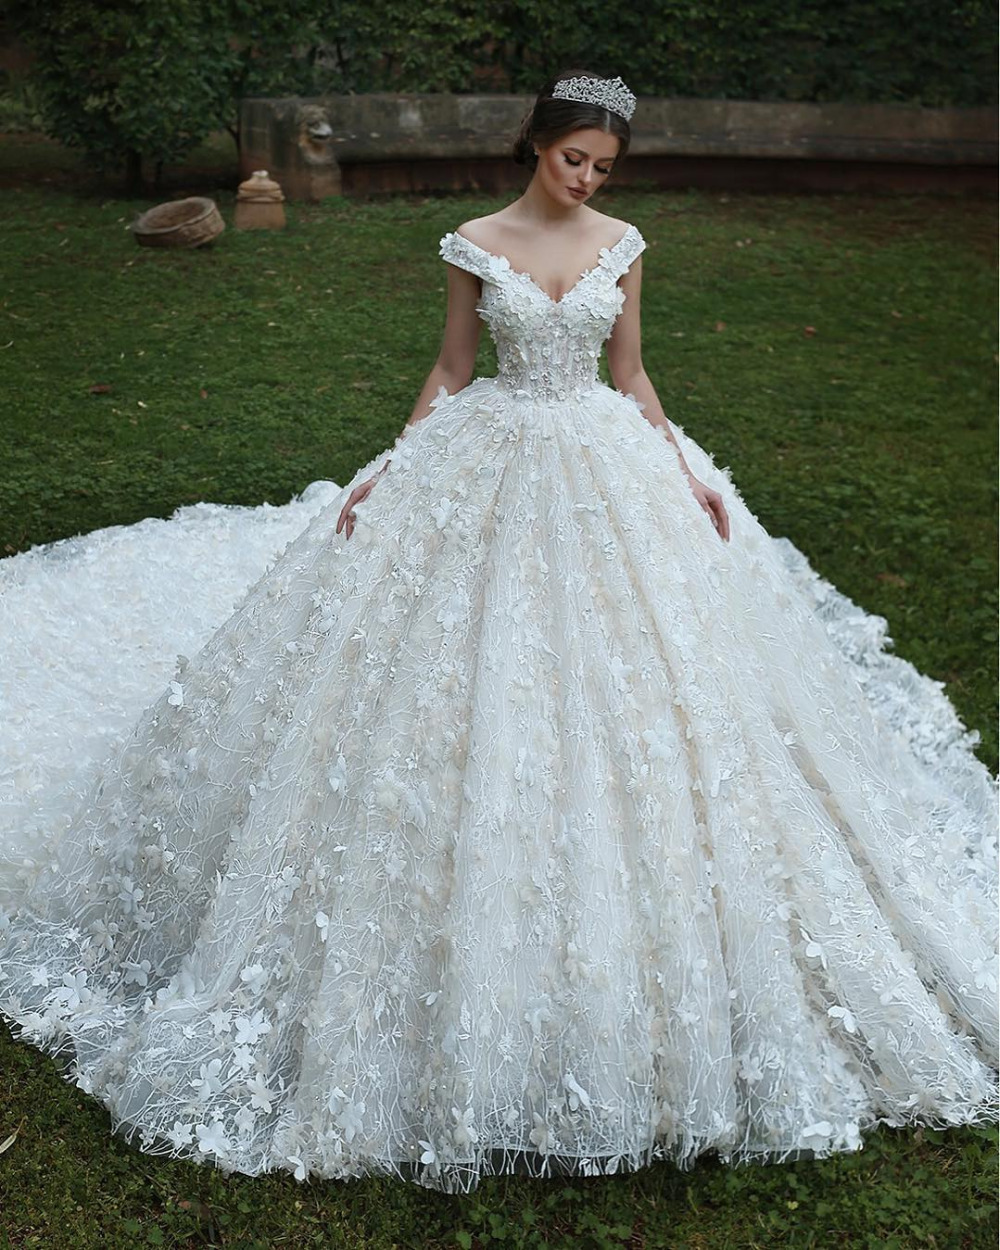 Wedding Dressing Gowns Personalised: Eslieb High End Custom Made Lace V Neck Ball Gown Wedding